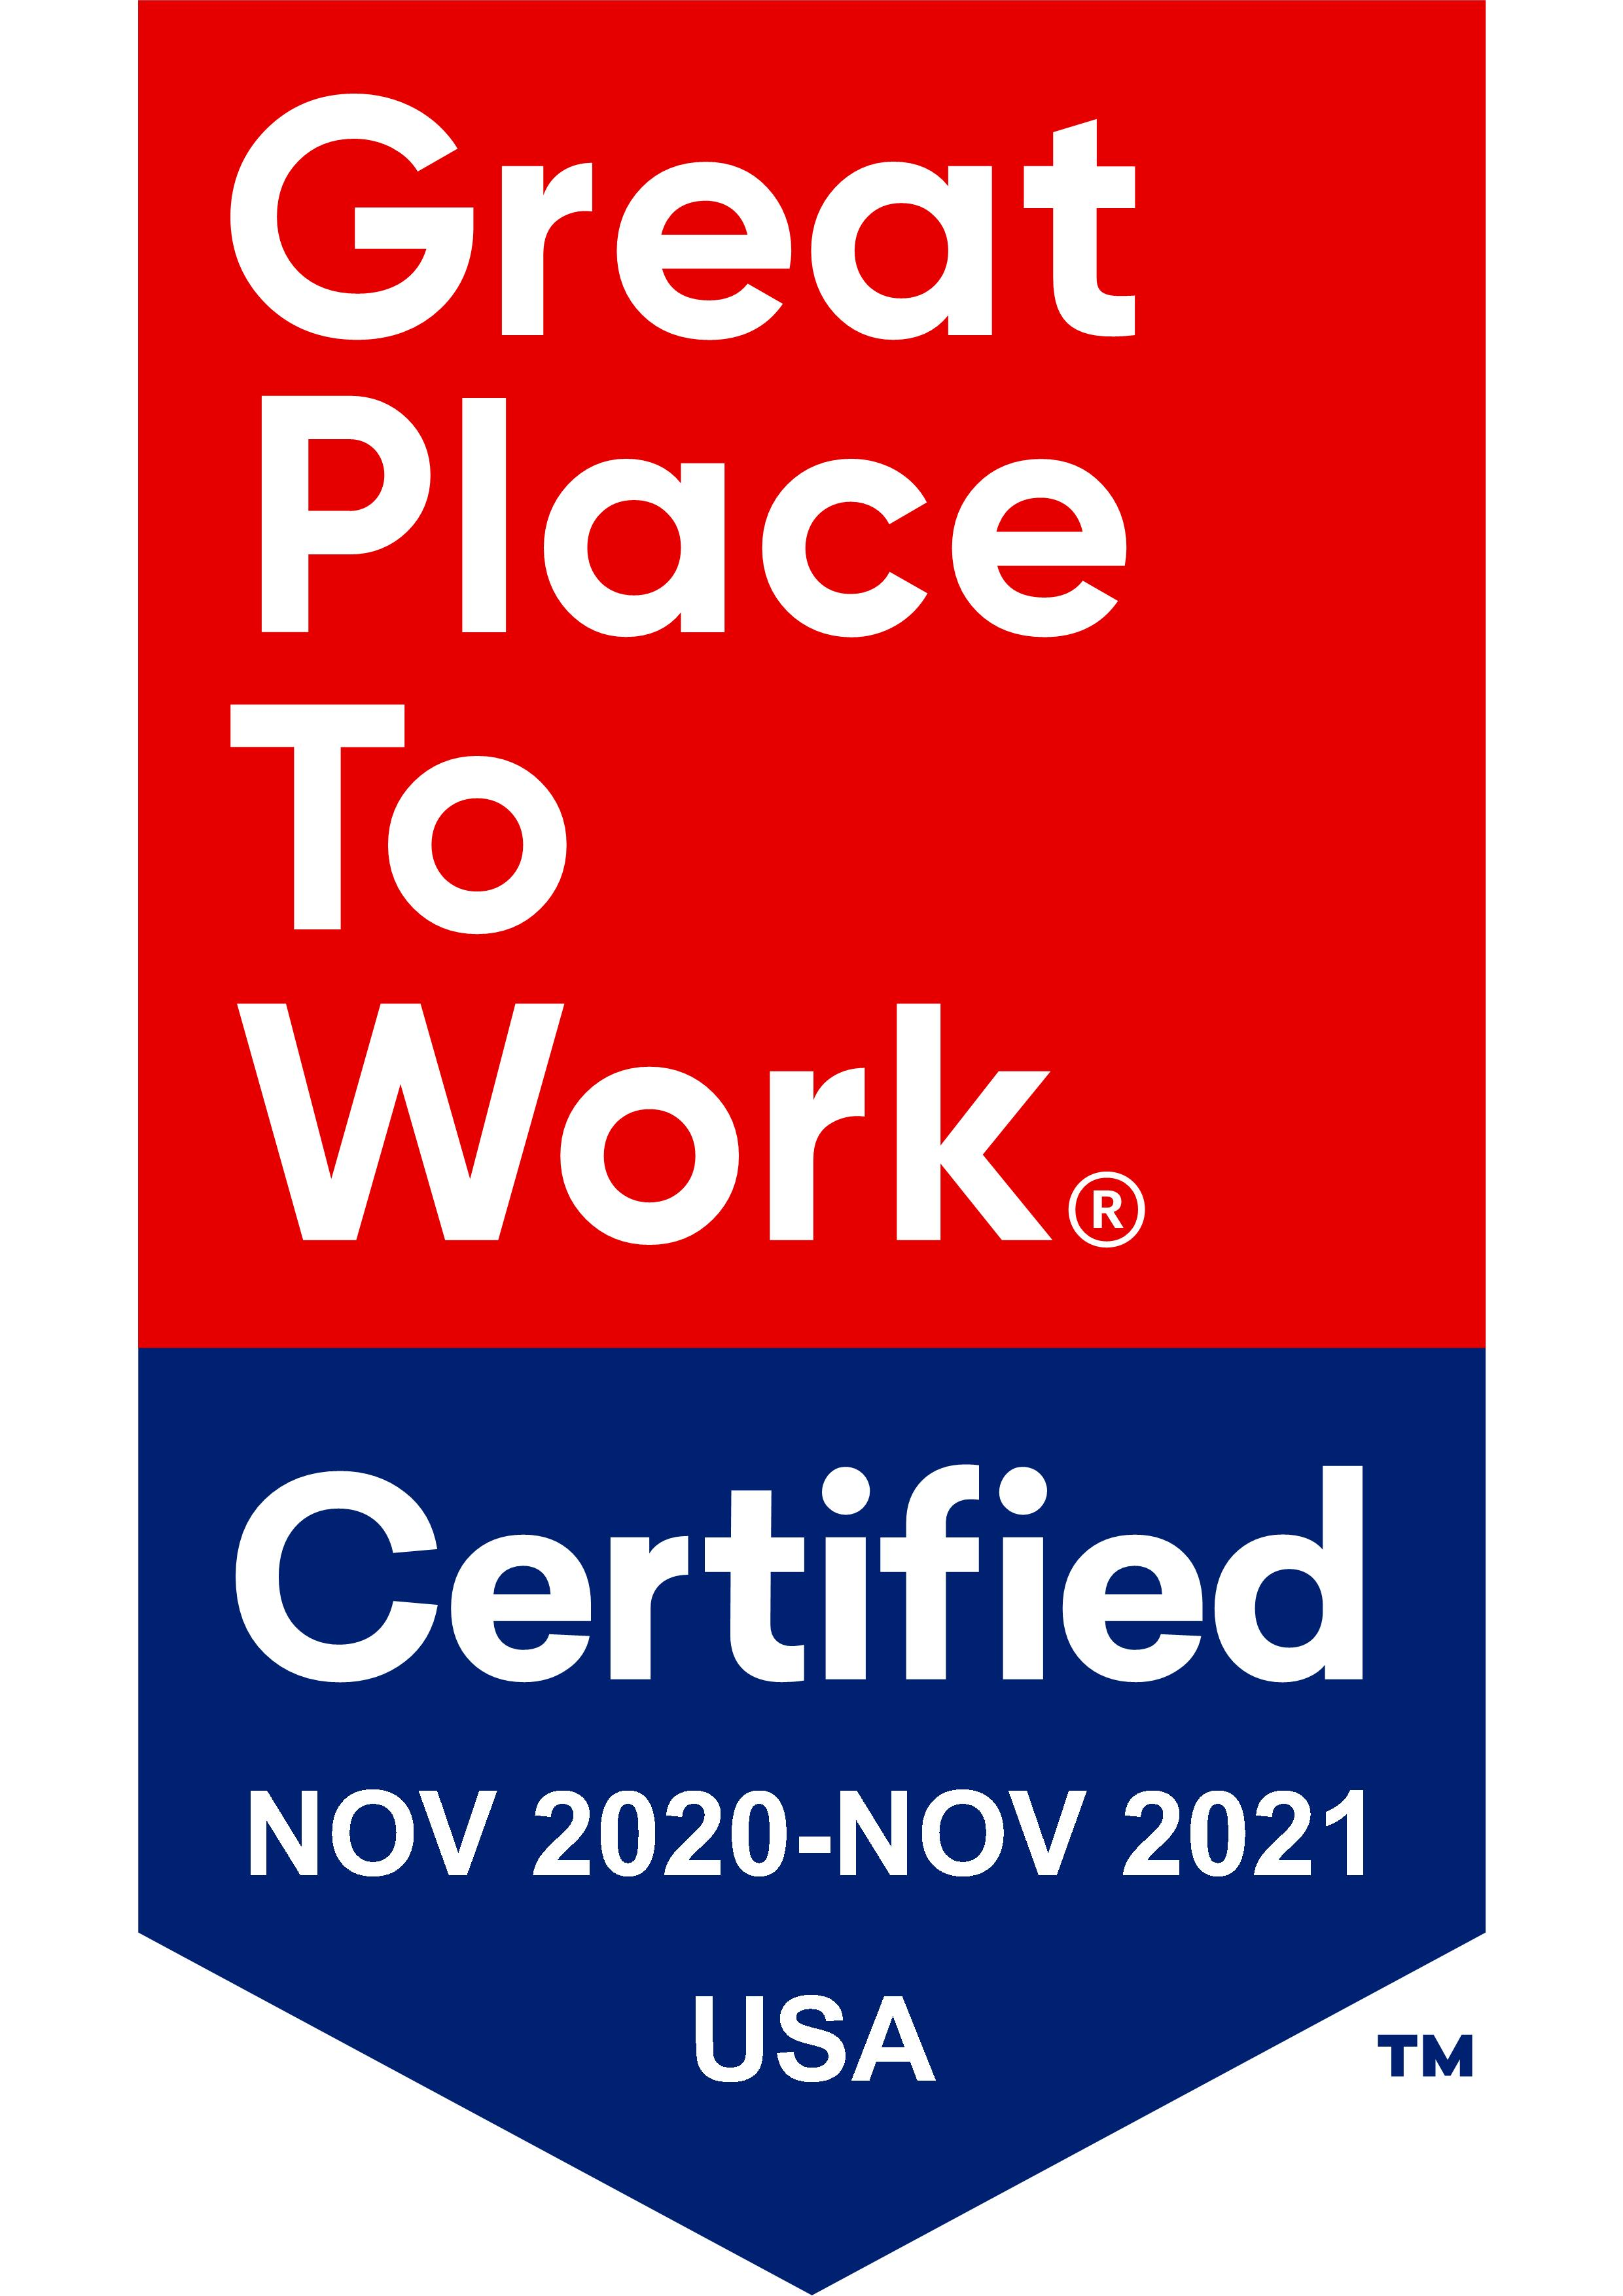 West_Bend_Mutual_Ins._Co._2020_Certification_Badge